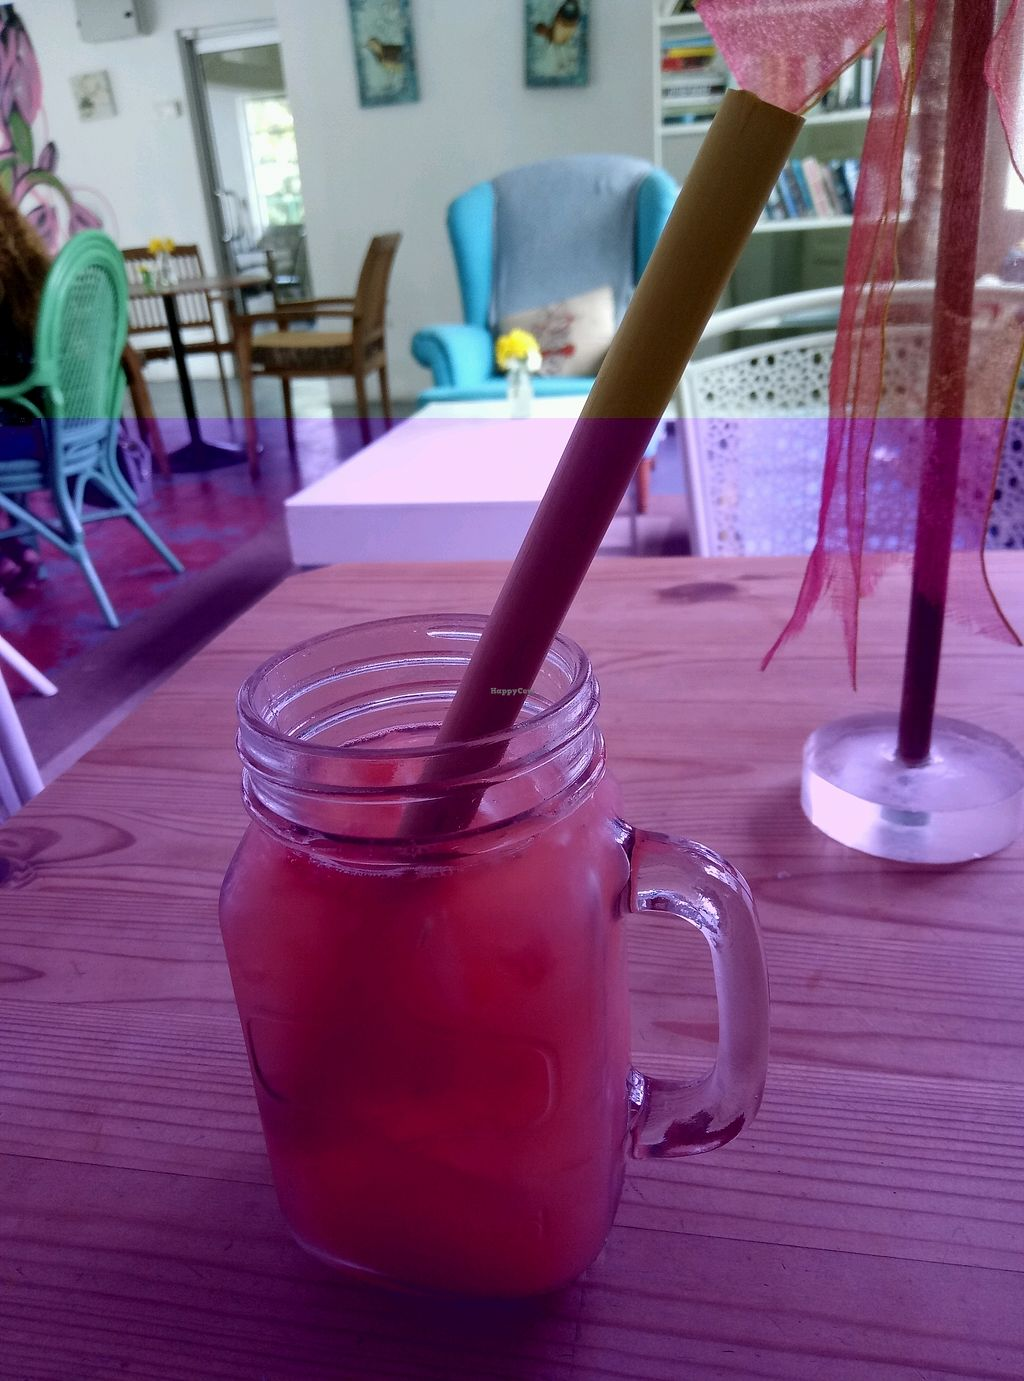 "Photo of RGB and The Bean Hive  by <a href=""/members/profile/SamanthaBurns"">SamanthaBurns</a> <br/>Delicious grapefruit drink with bamboo straws <br/> February 10, 2018  - <a href='/contact/abuse/image/47954/357261'>Report</a>"